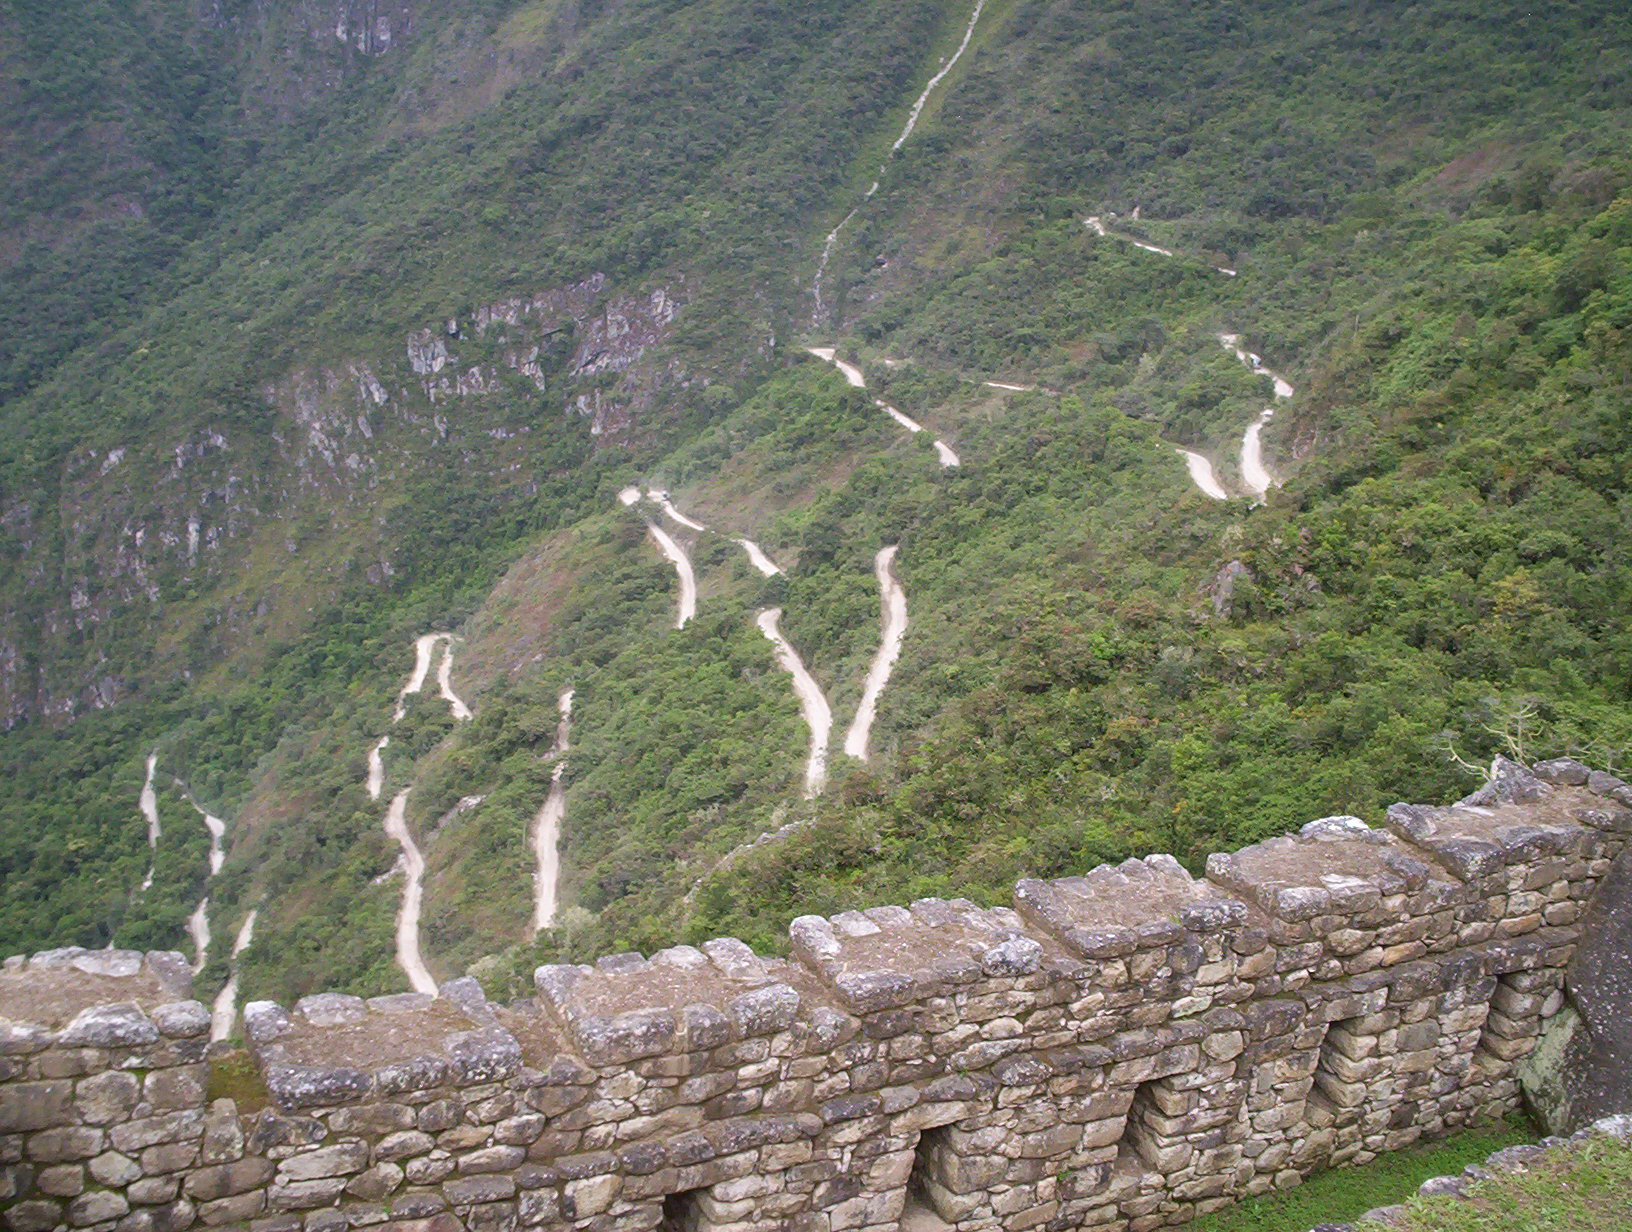 I hope you like winding roads because this is the one you have to take to get to Machu Picchu from the town of Aguas Calientes.